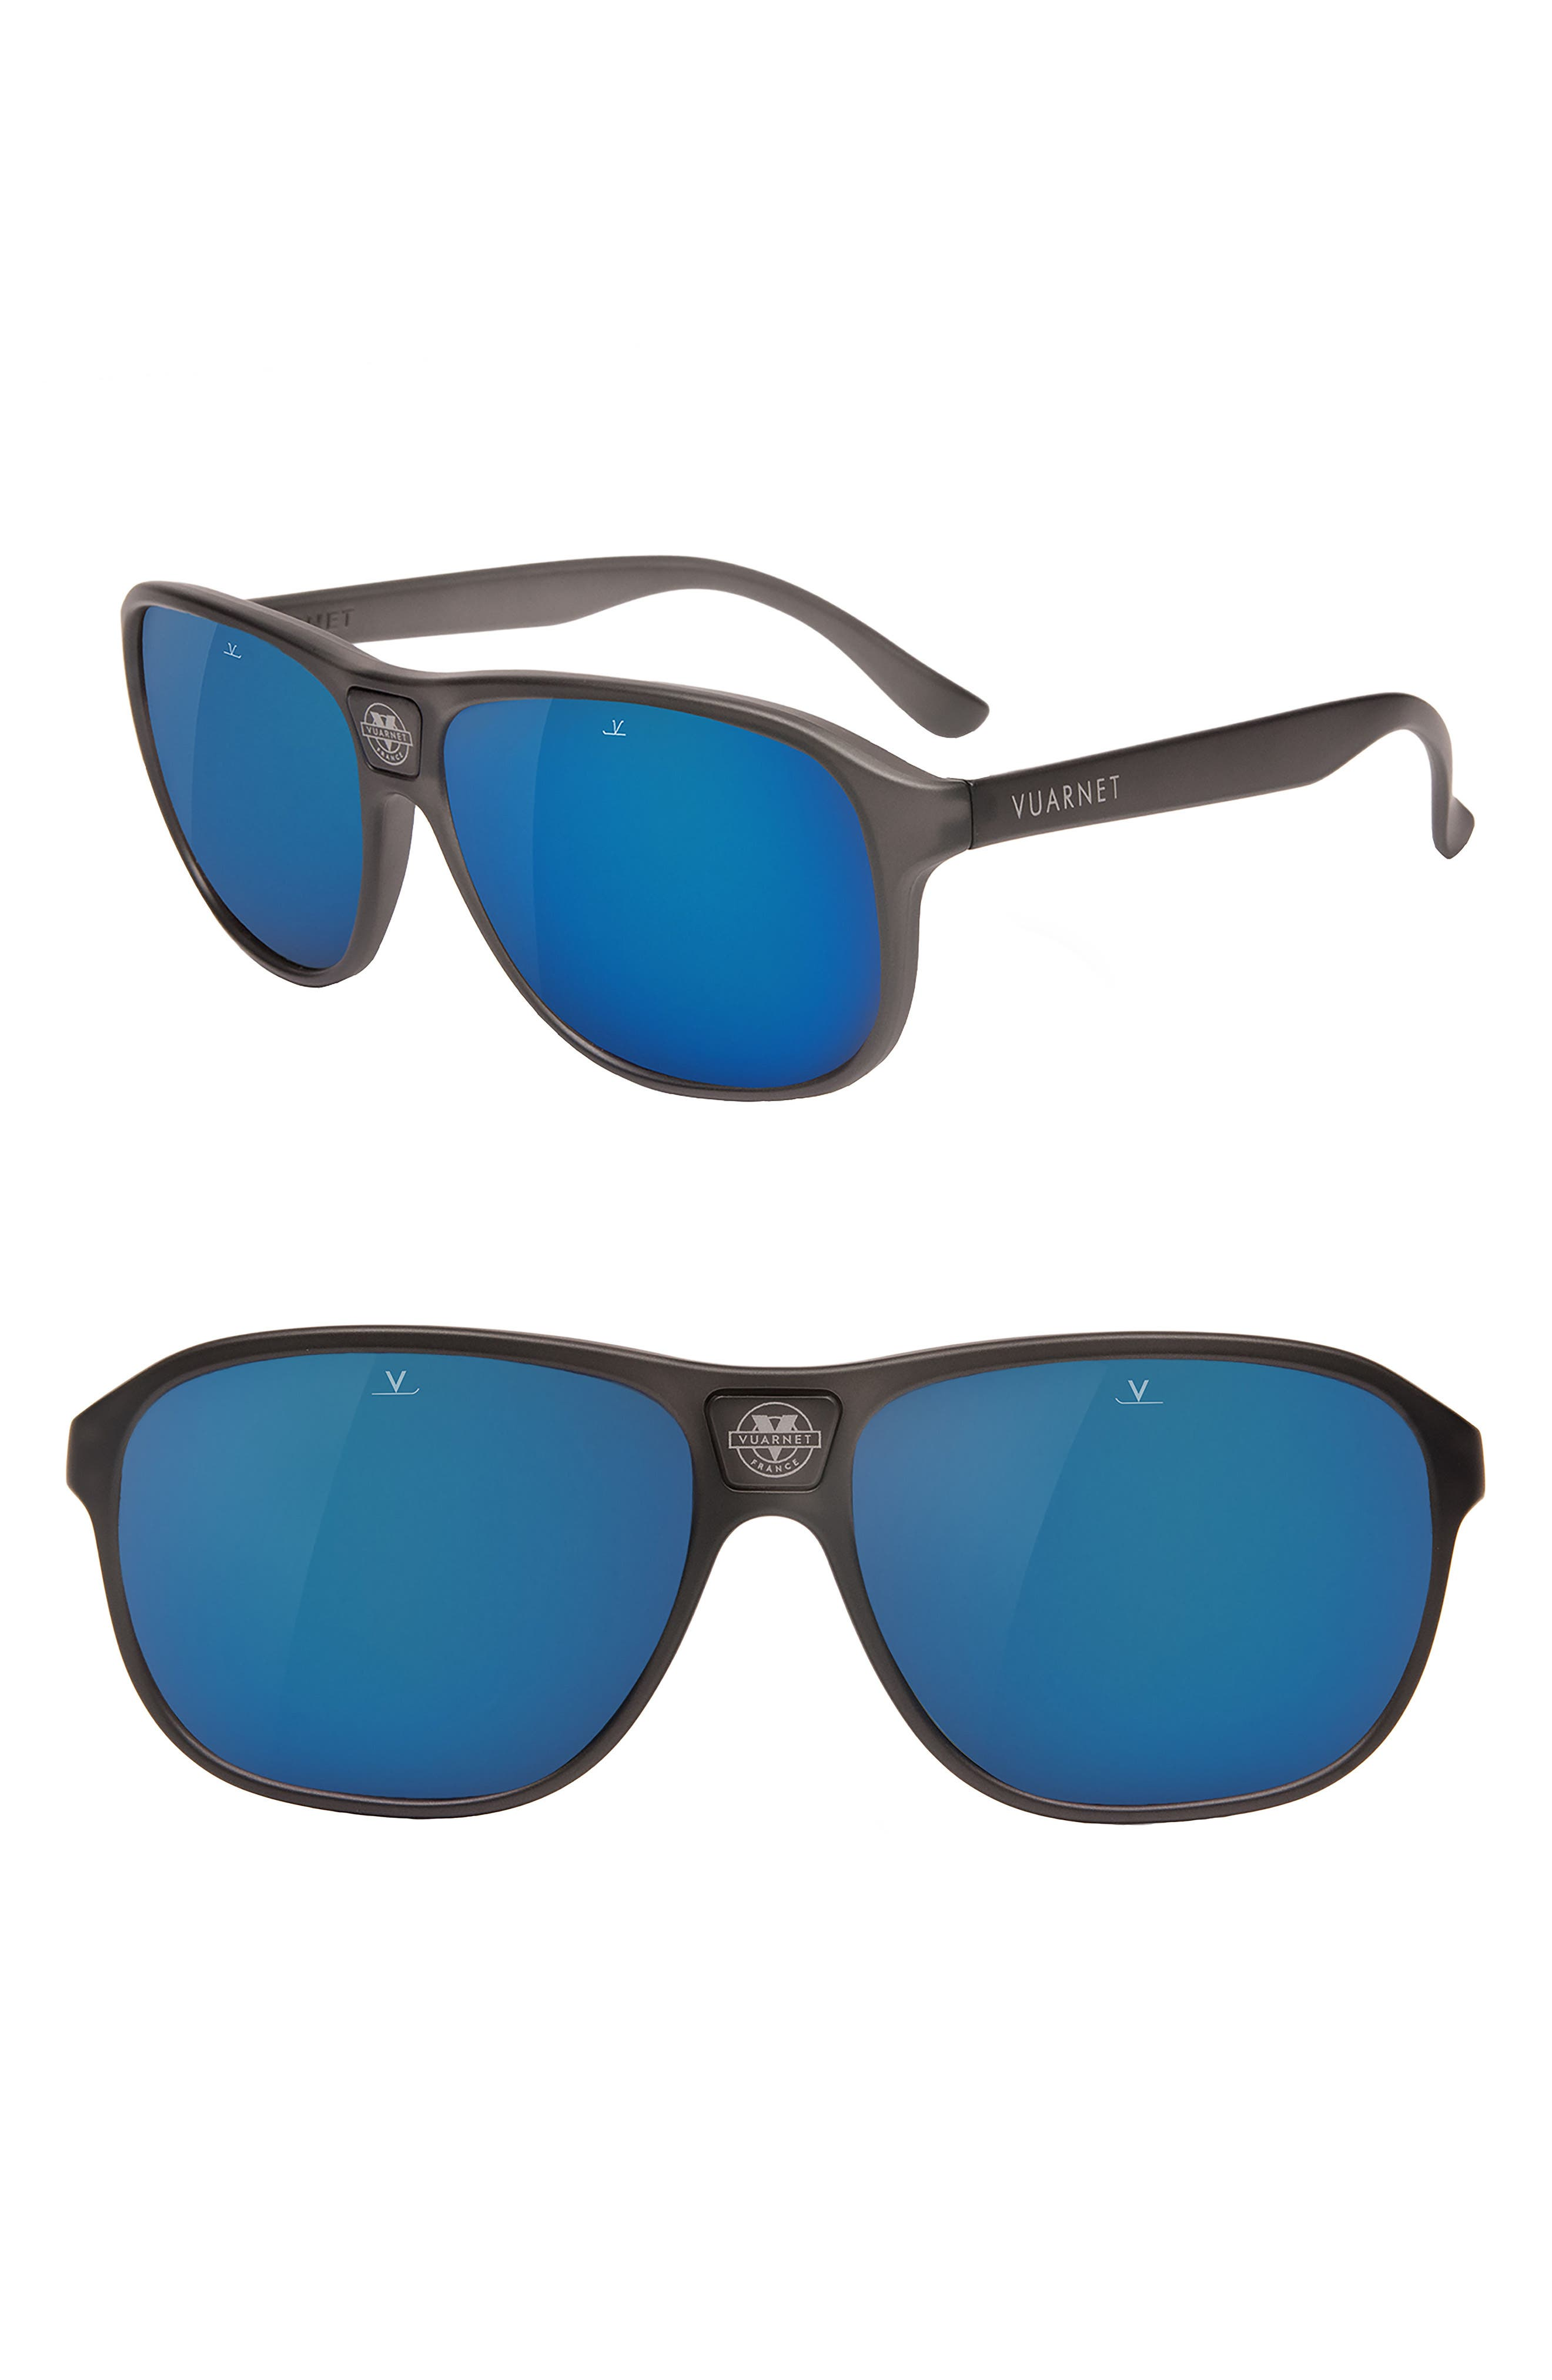 Legends 03 56mm Polarized Sunglasses,                             Main thumbnail 1, color,                             Grey Polar Blue Flash